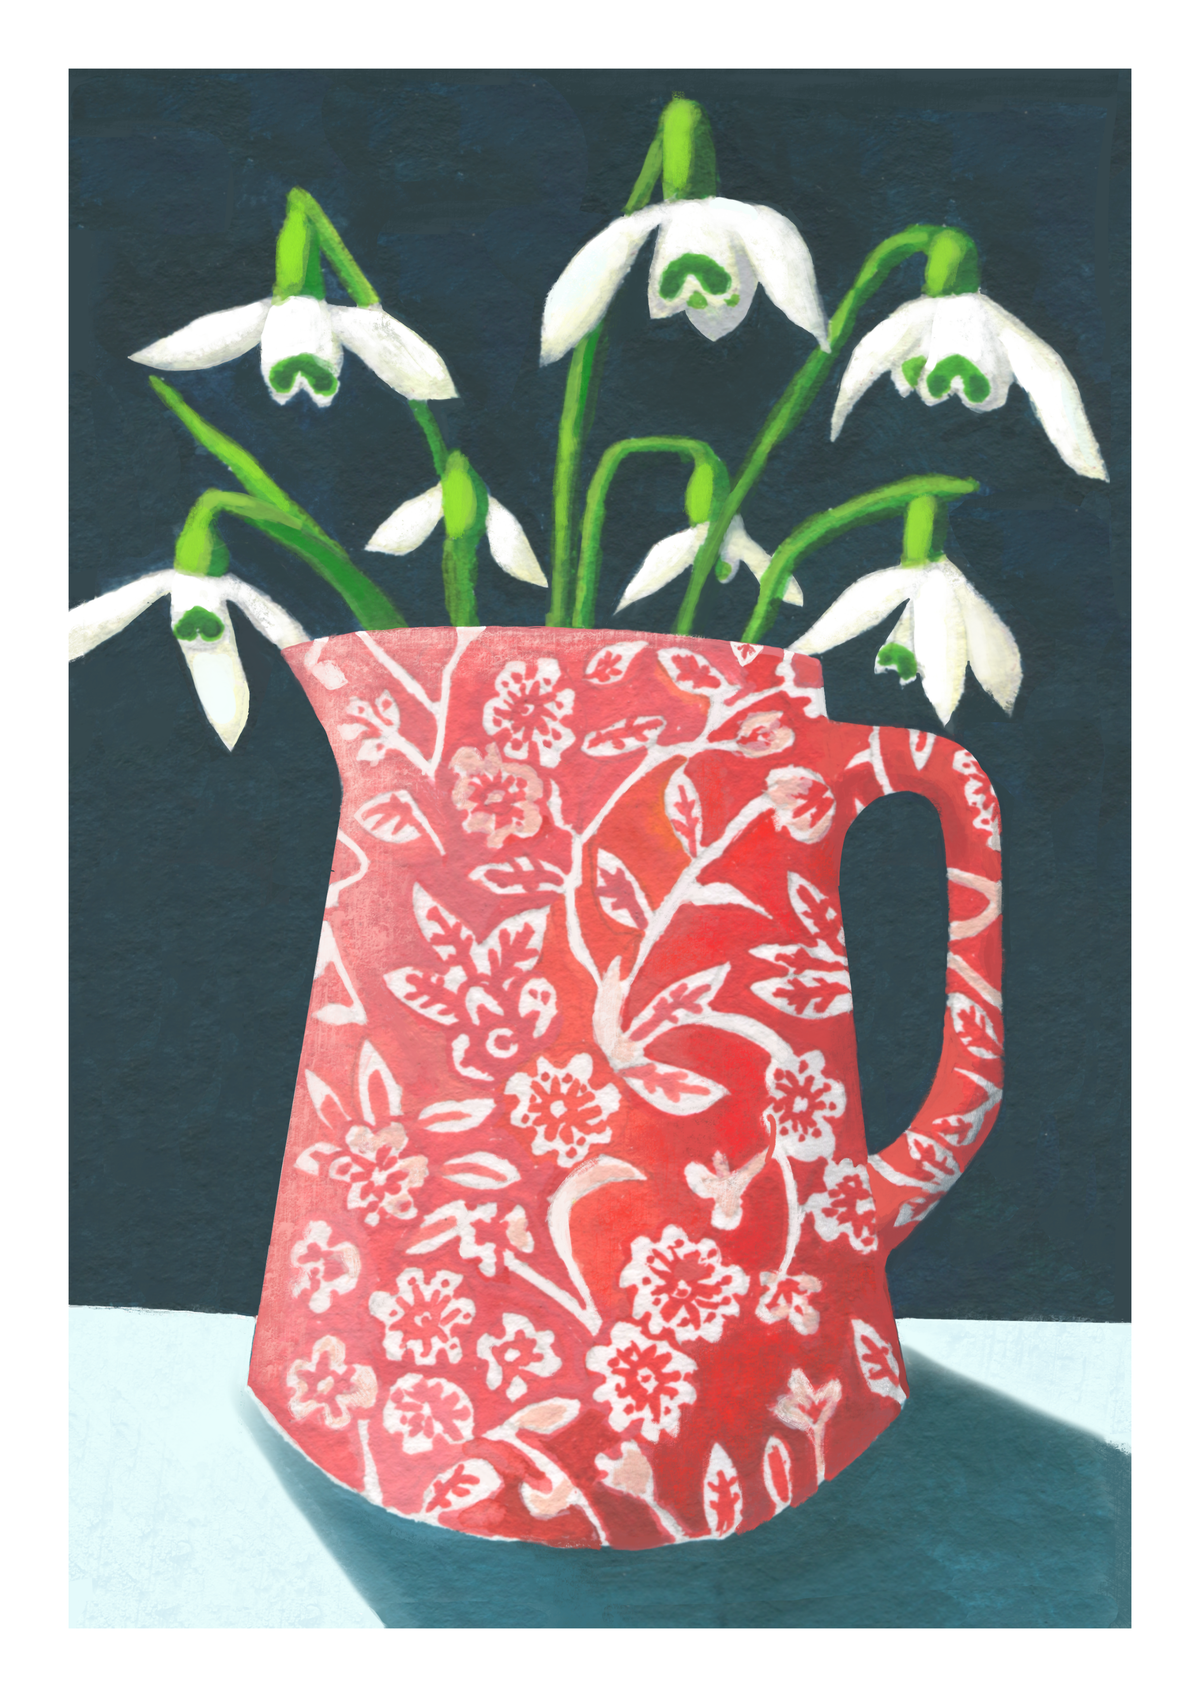 Snowdrops in Red Calico Jug